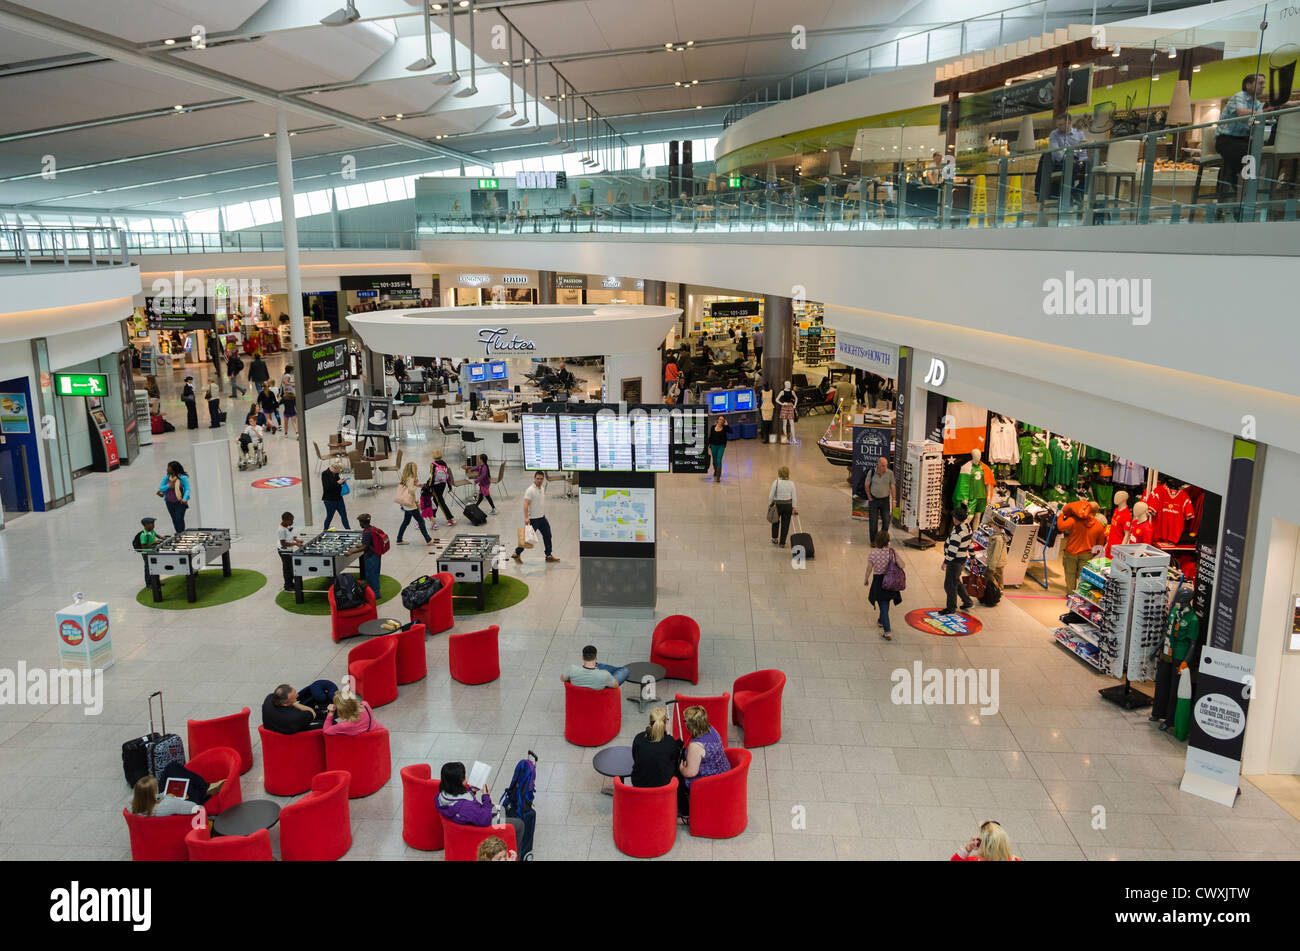 Departures area, airport lounge at Terminal 2, Dublin Airport, Ireland - Stock Image